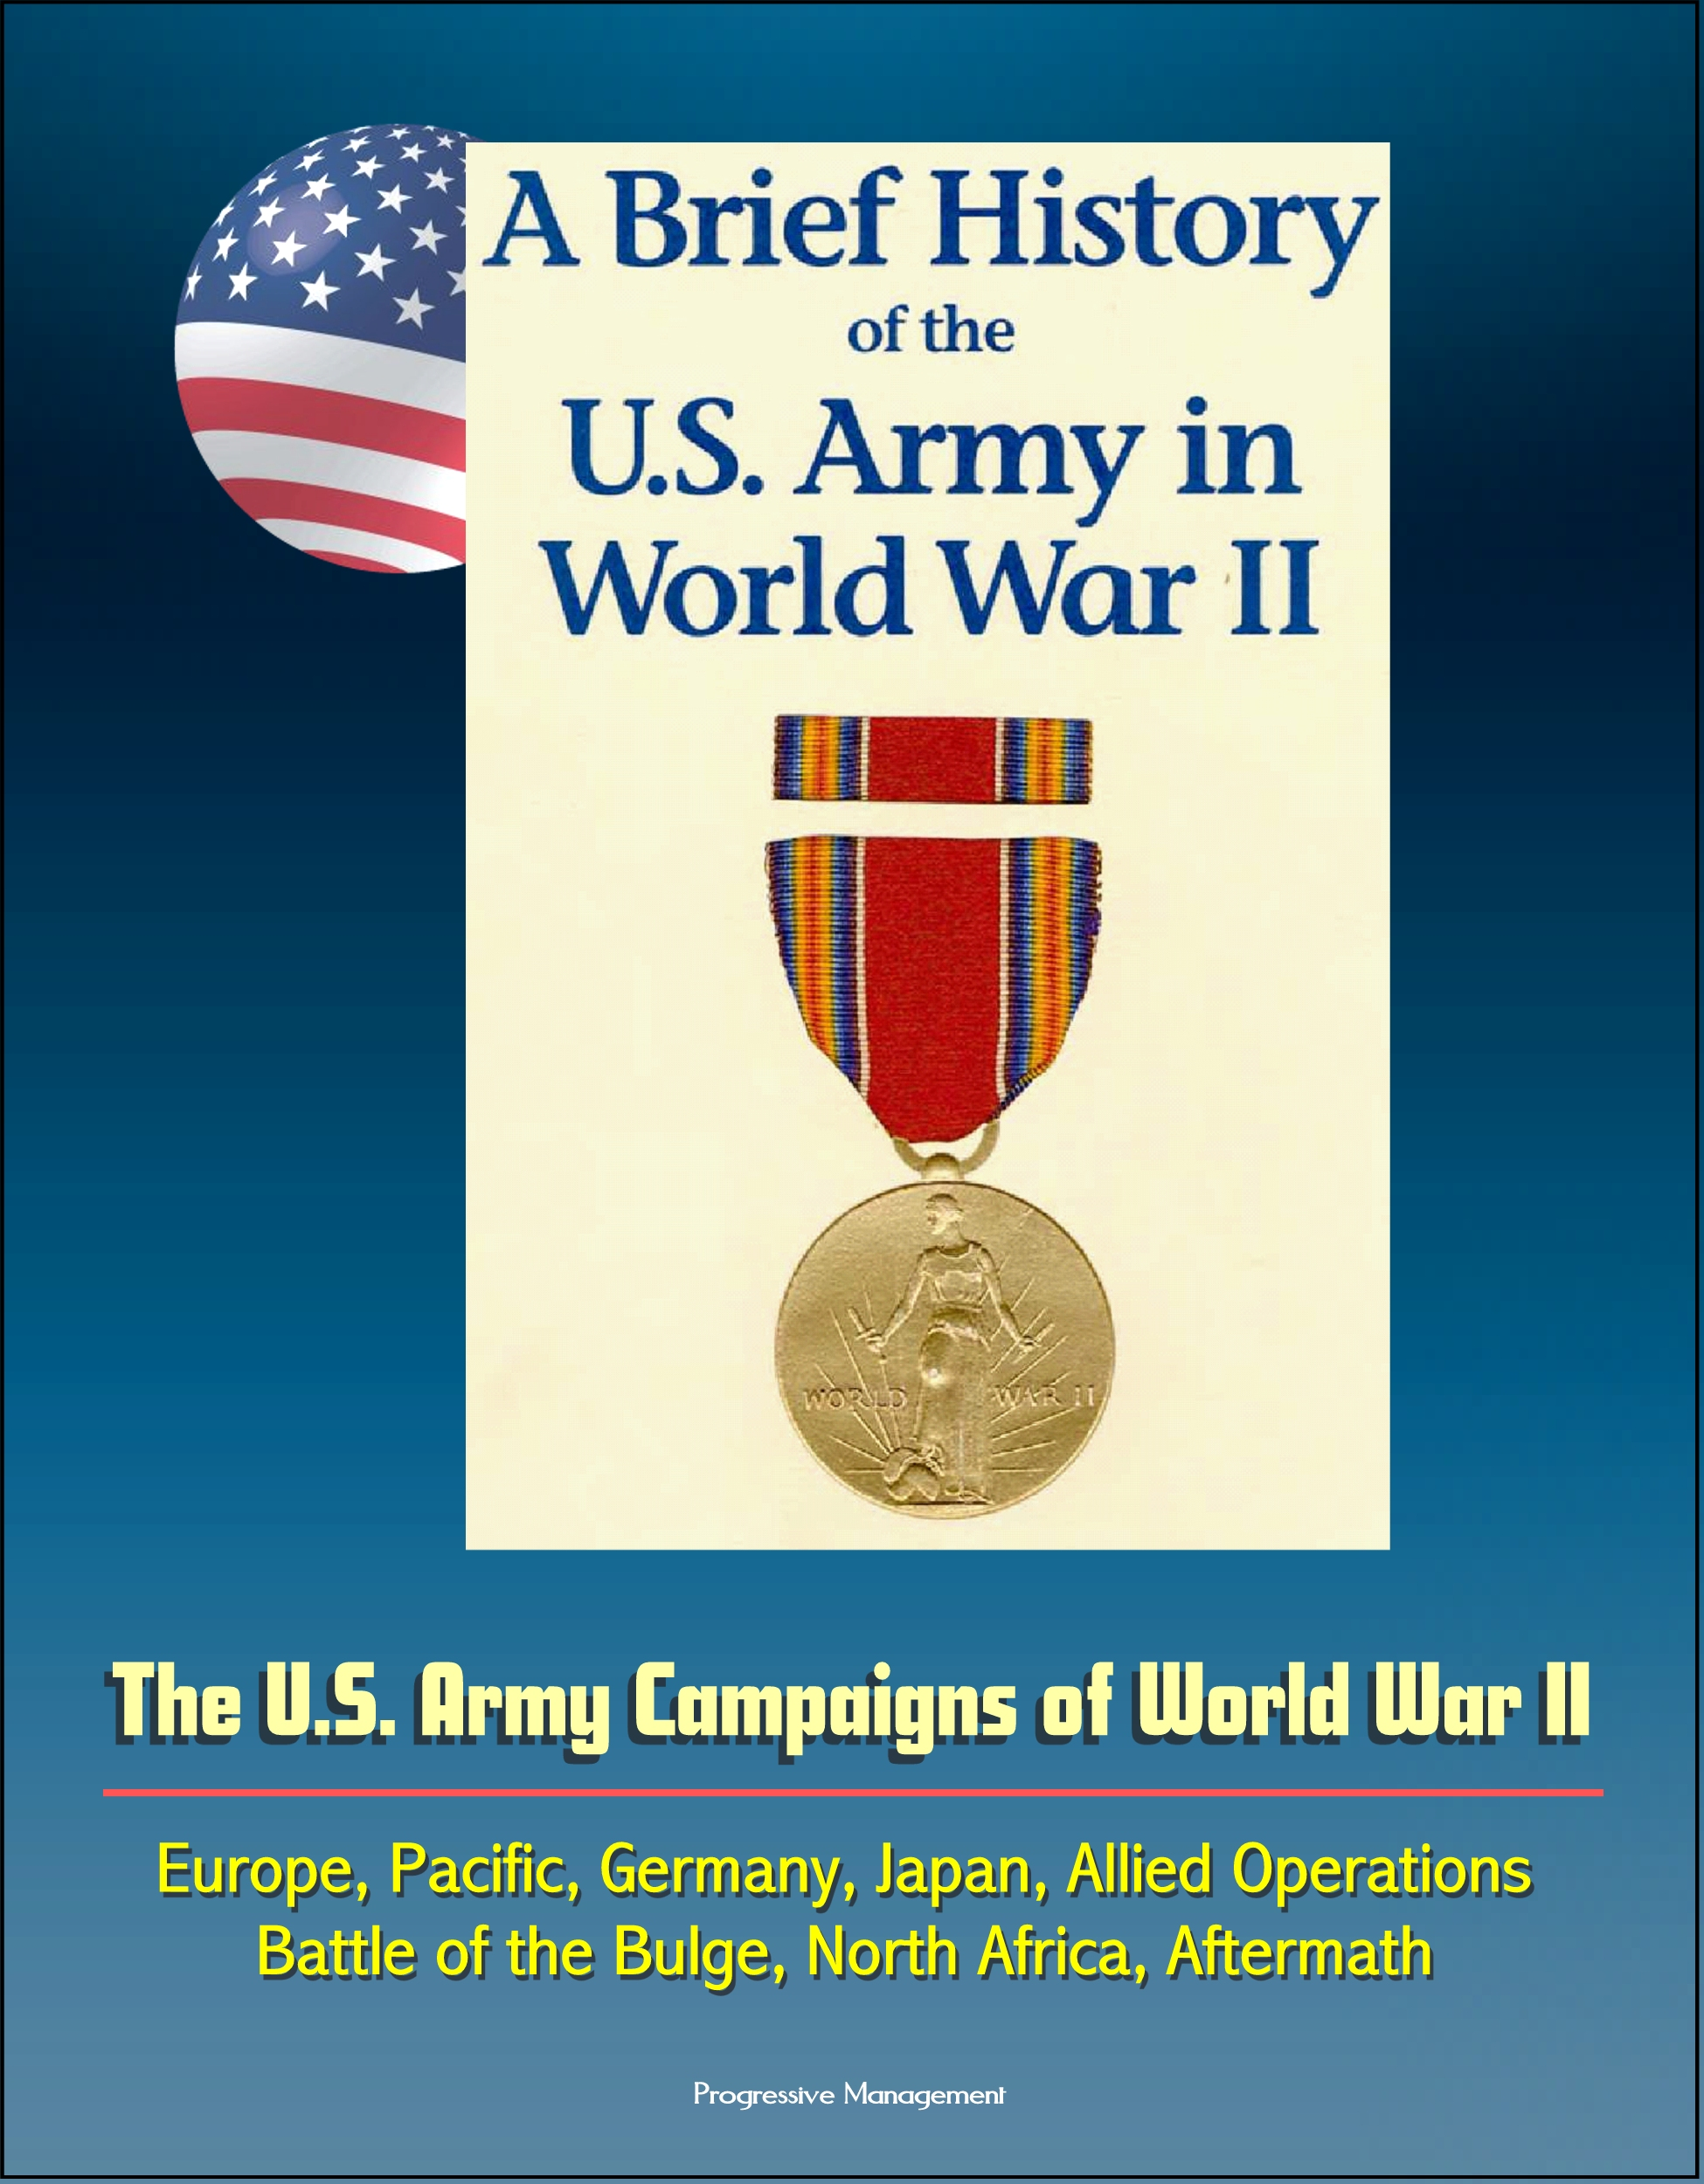 a brief history of wwii Us history and historical documents the history of the united states is vast and complex after world war ii.